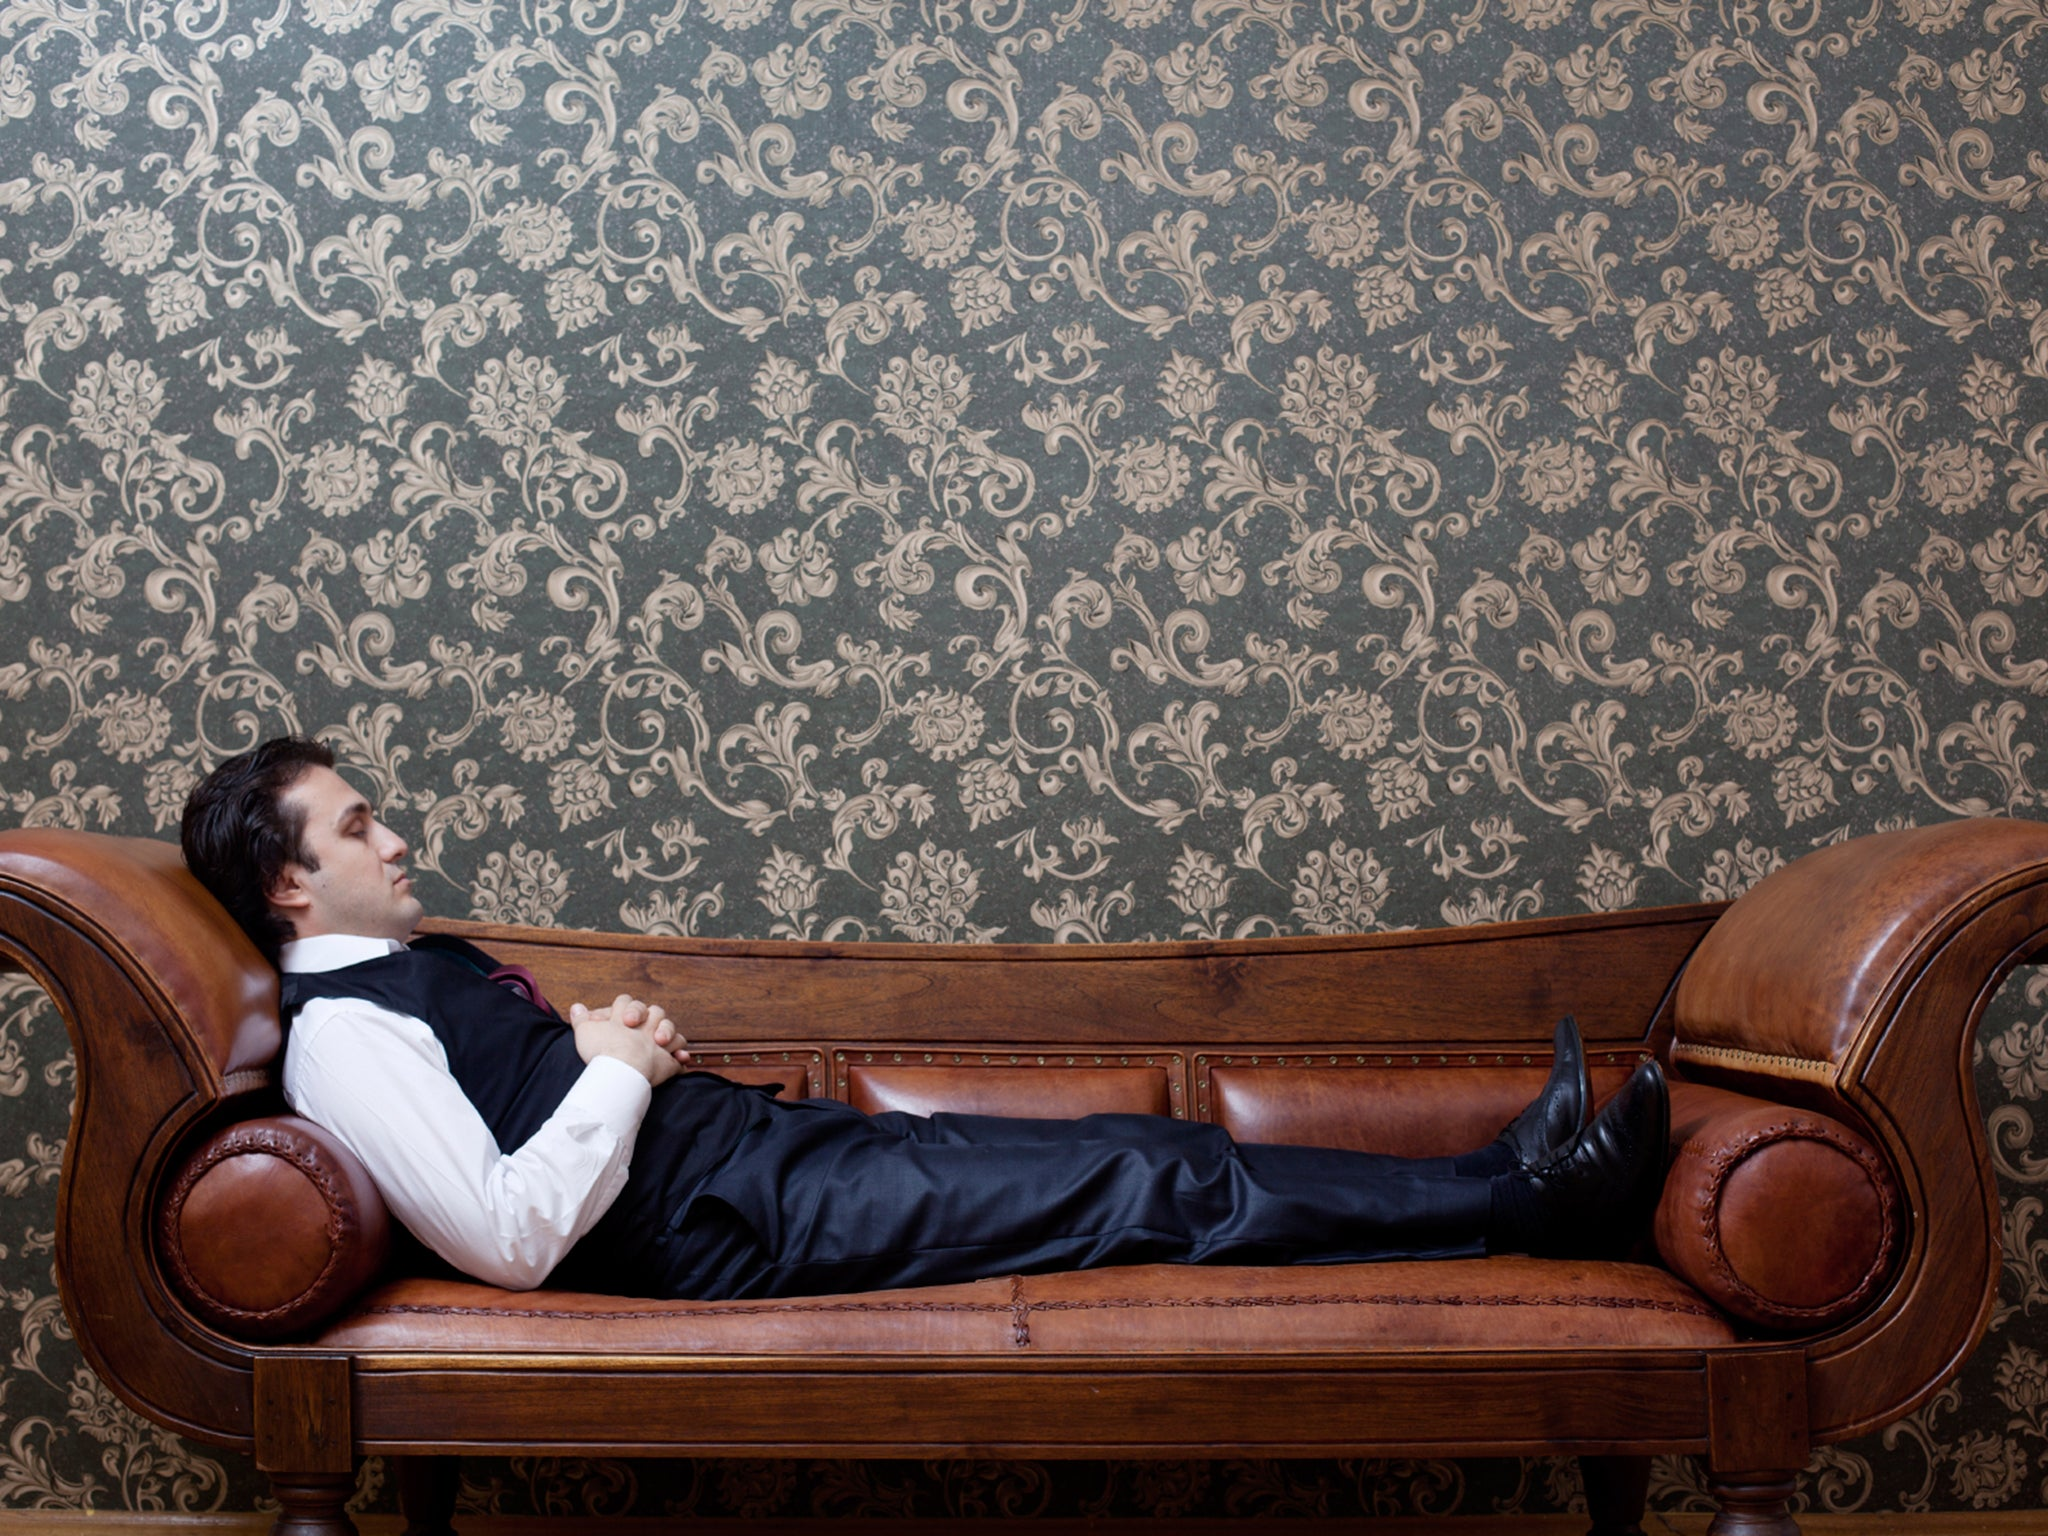 Why do people lie on a couch when they see a psychoanalyst ...